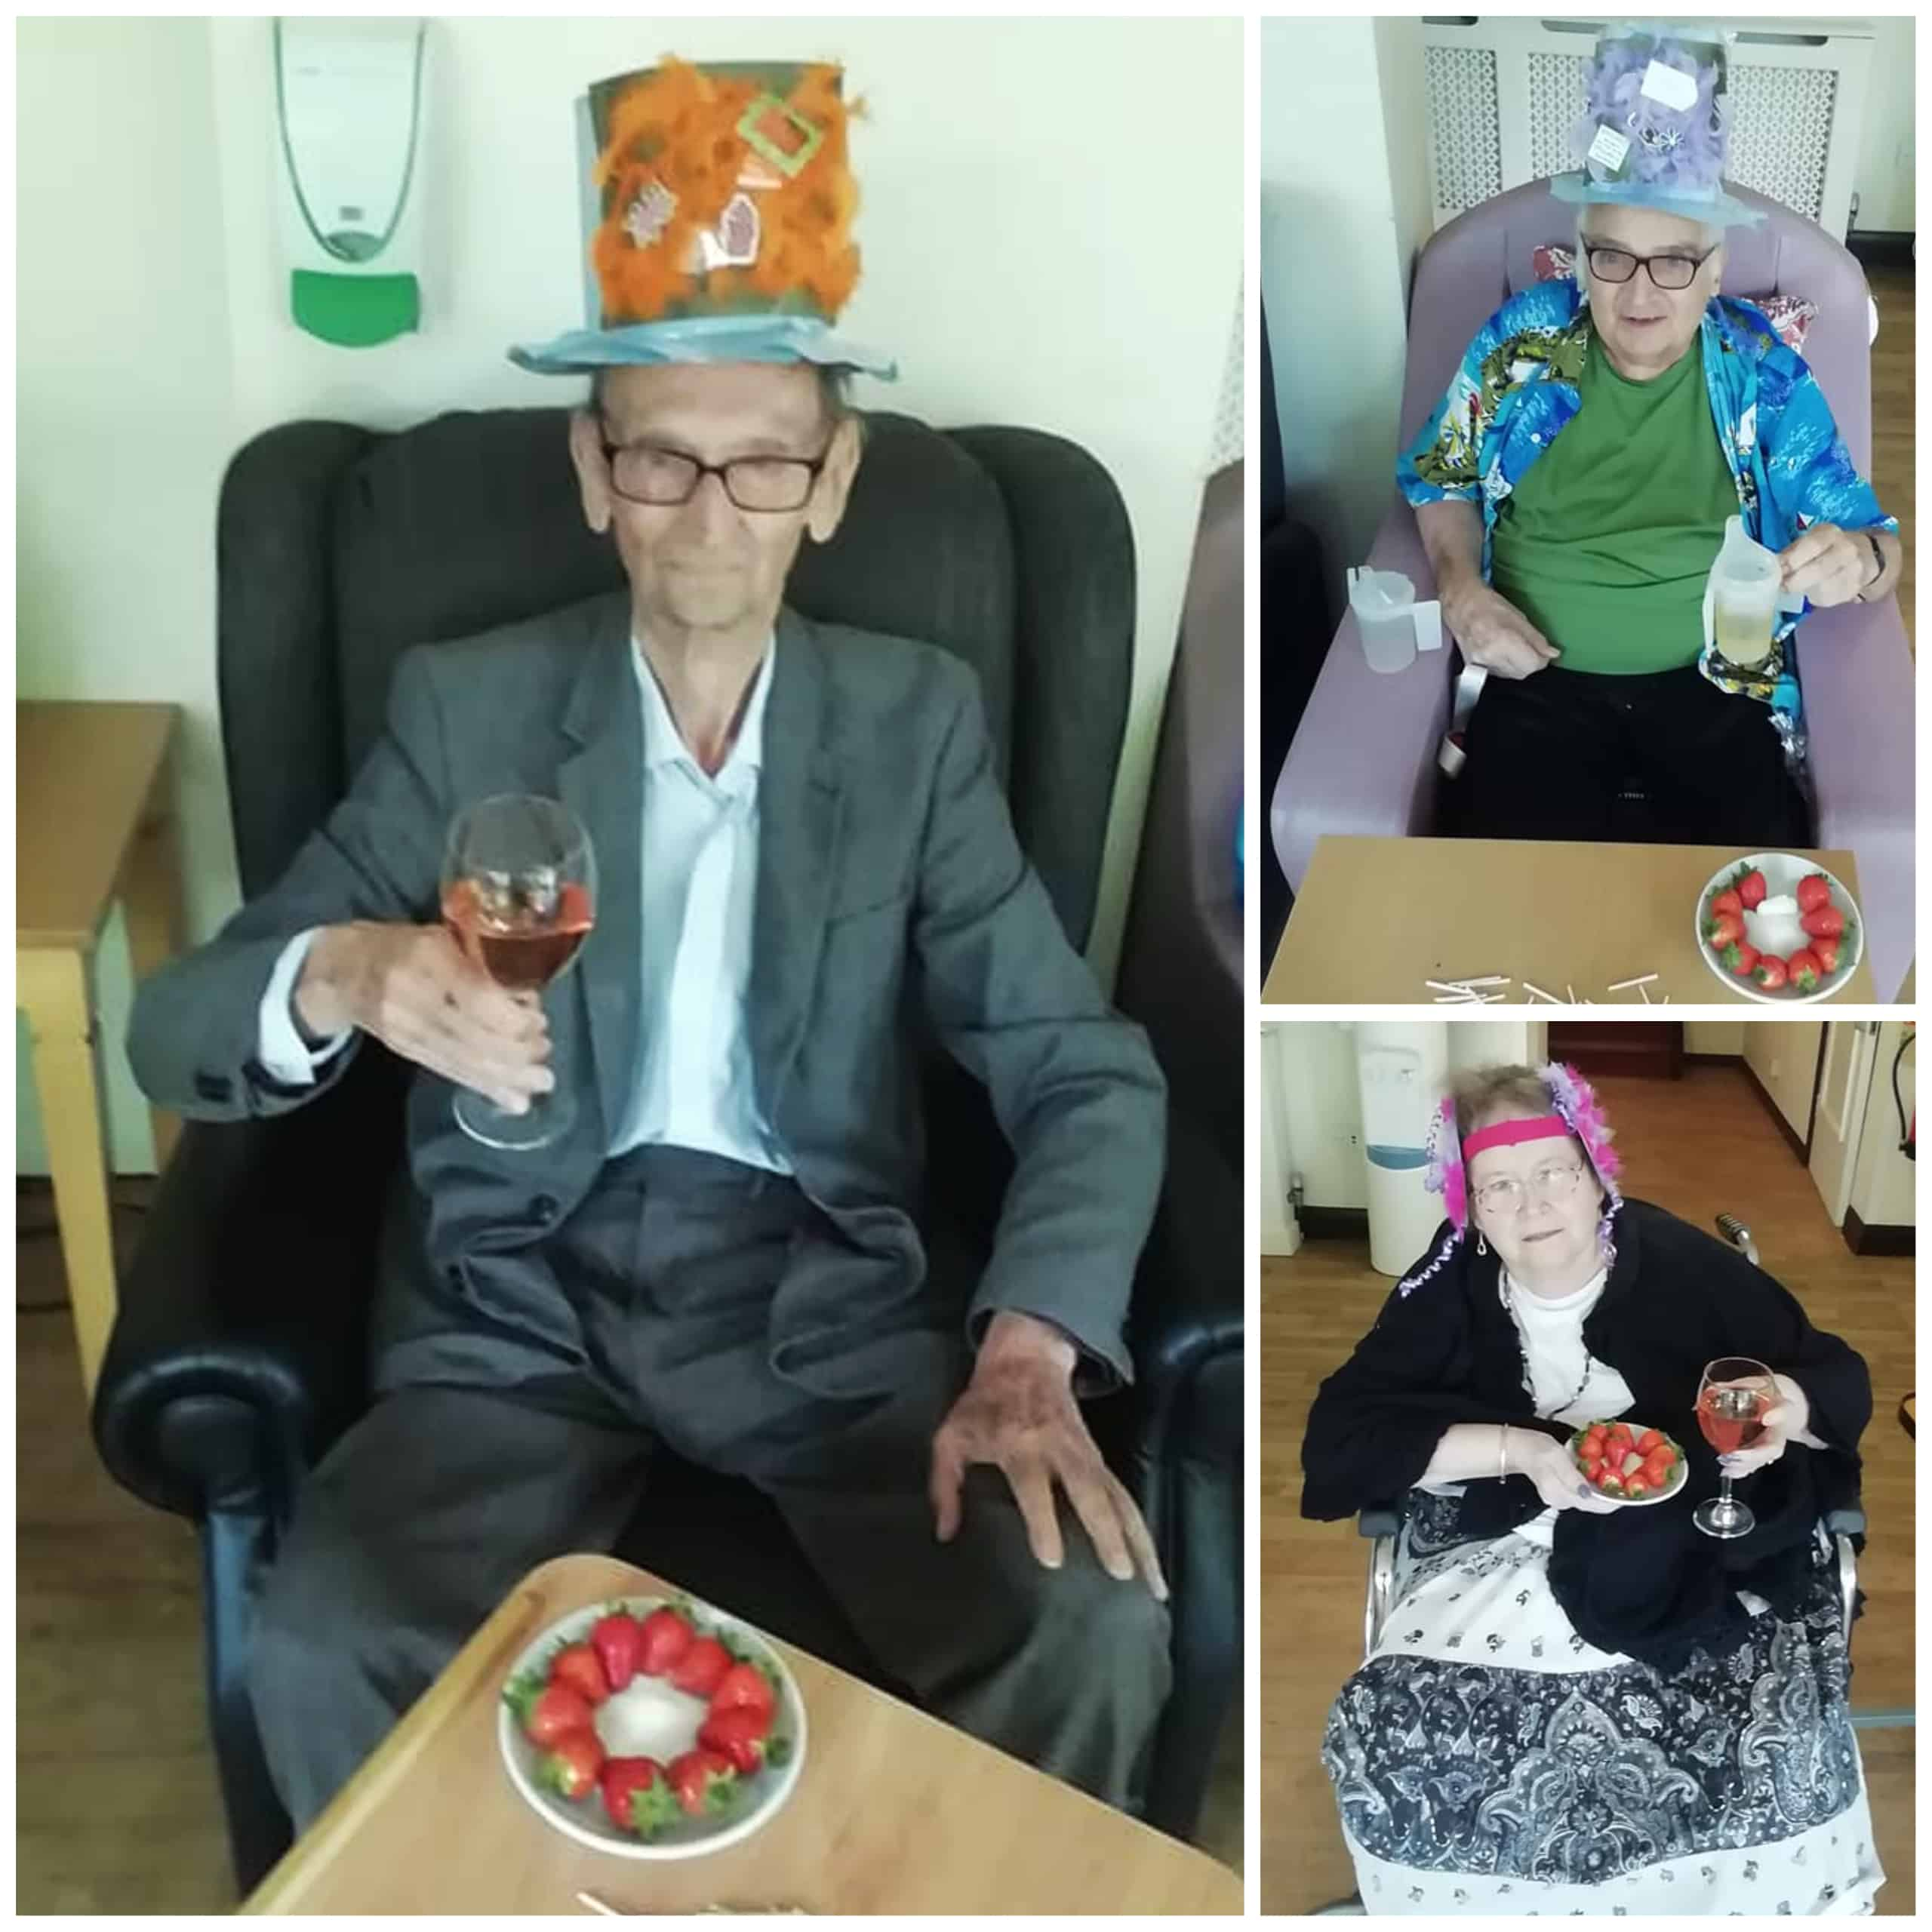 Residents at Highfield Care Home in Bekesbourne, Canterbury, show off their homemade hats and fascinators for their Royal Ascot celebration.